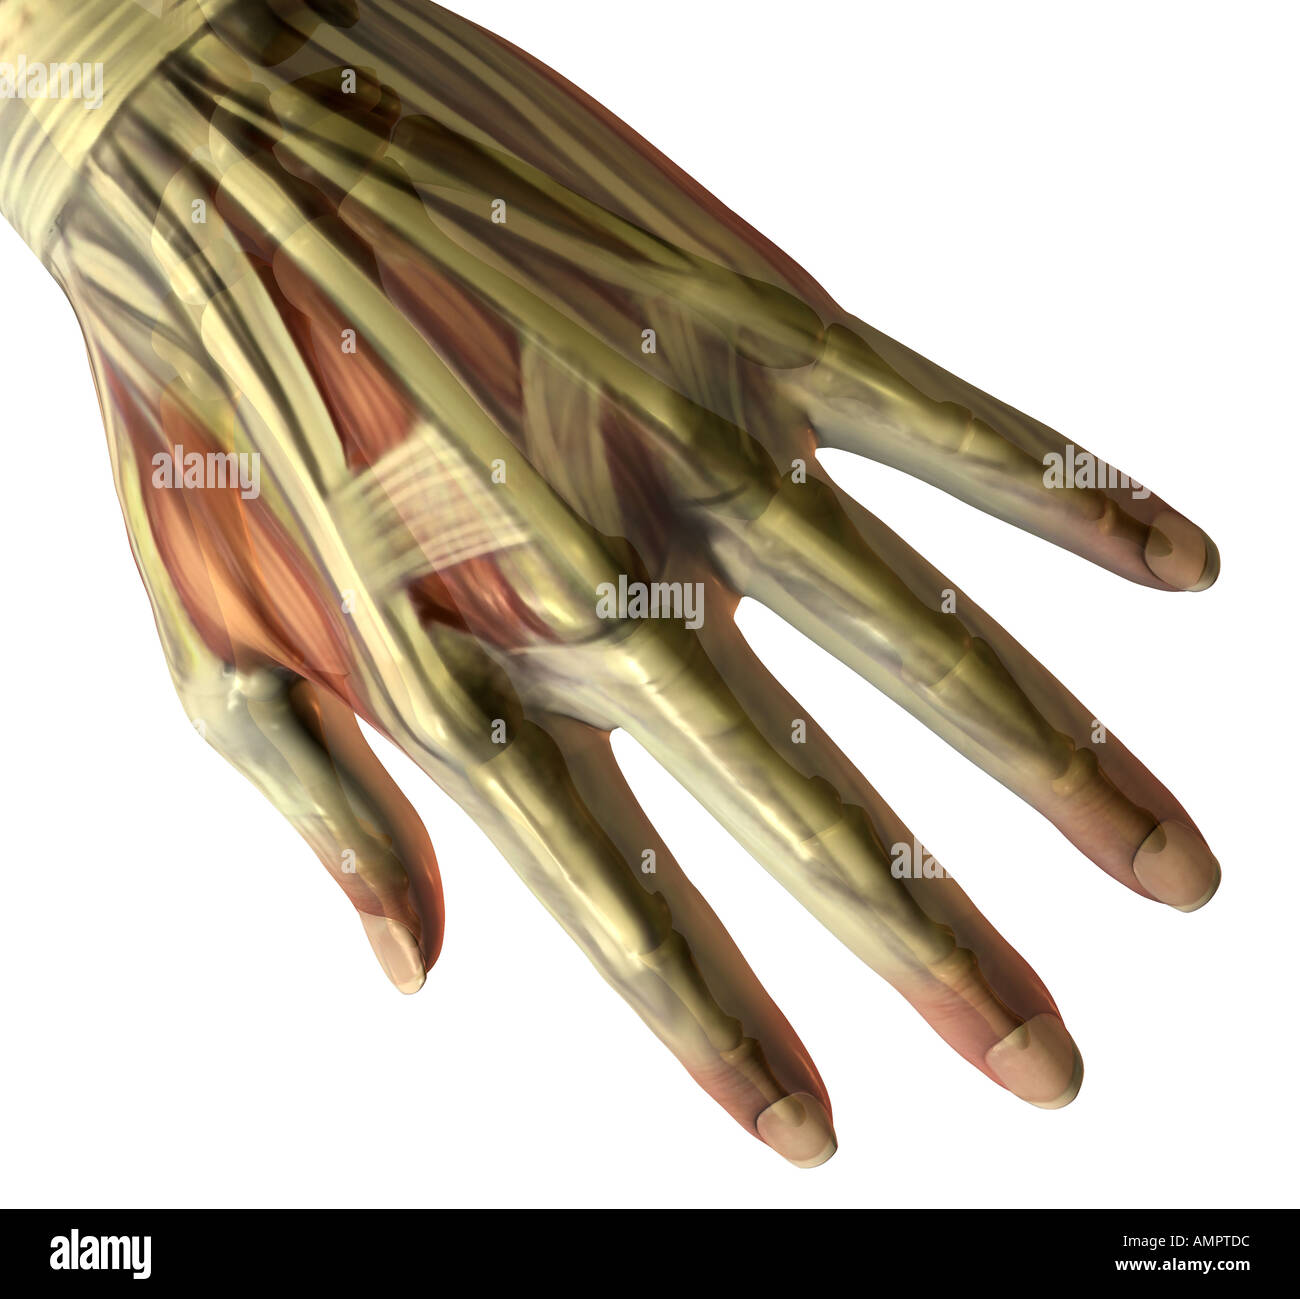 Pinky Finger Stock Photos & Pinky Finger Stock Images - Page 3 - Alamy